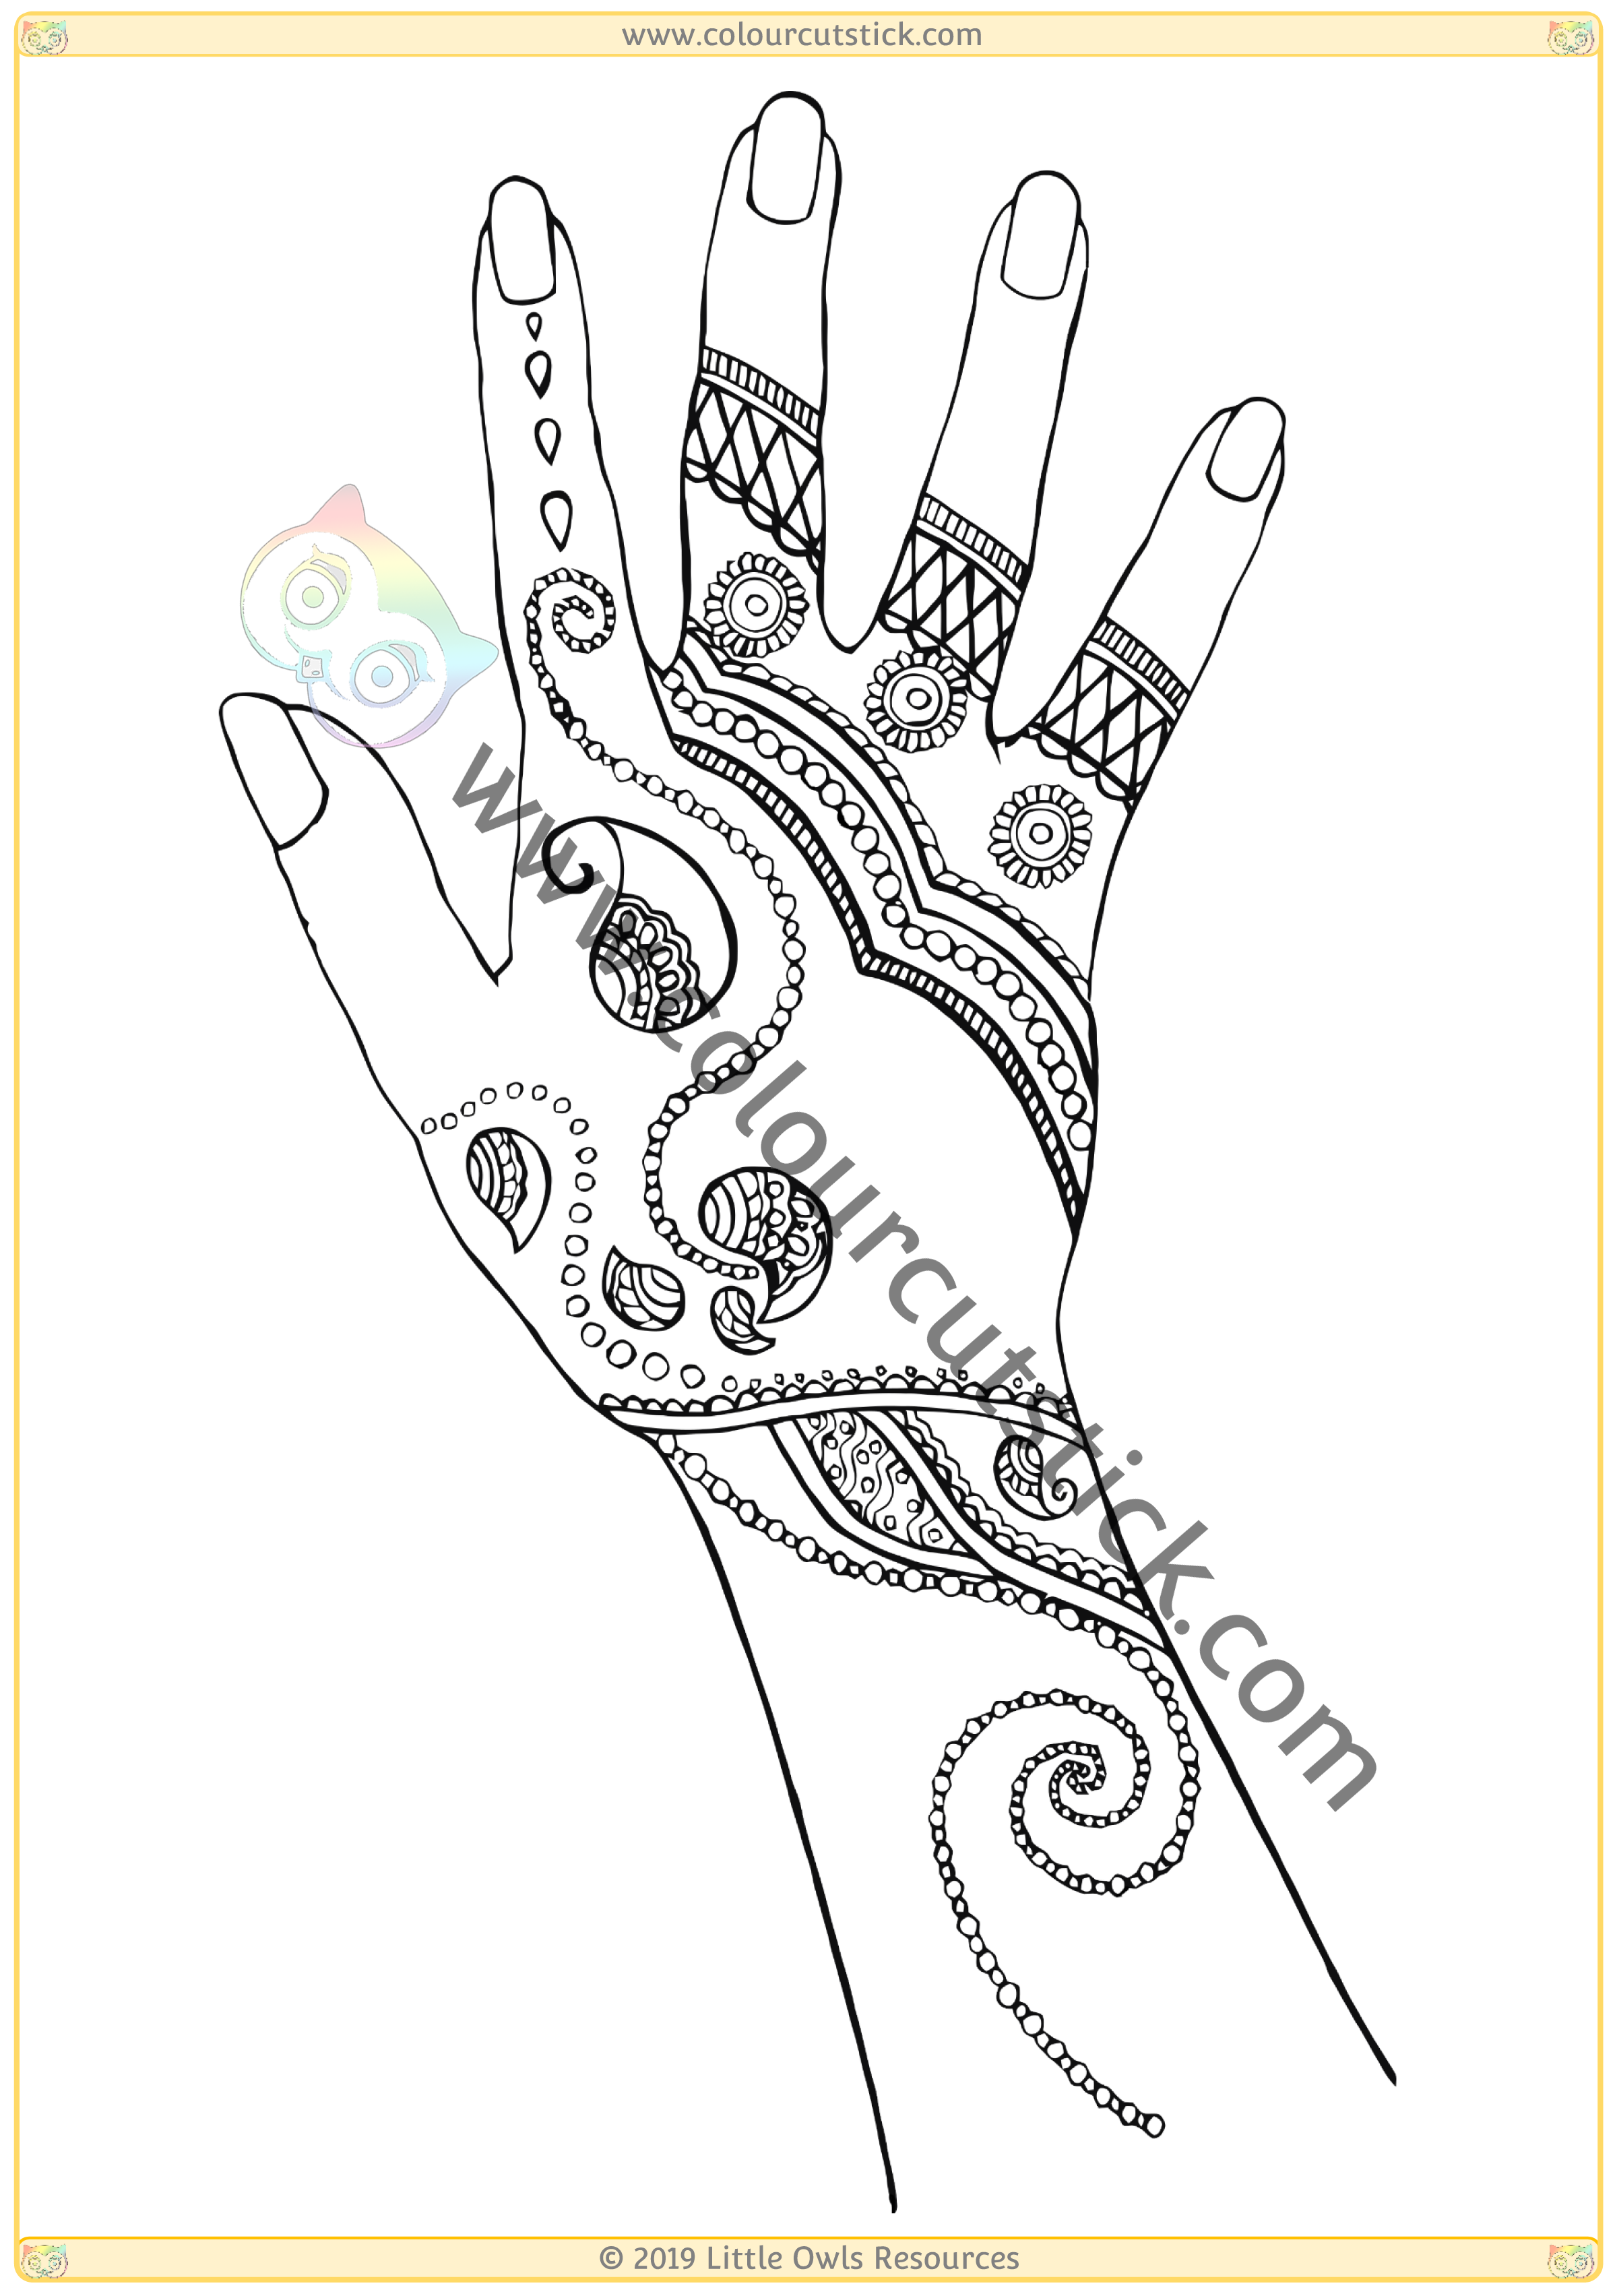 Click images below for a direct link to www.colourcutstick.com FREE Diwali colouring activities!